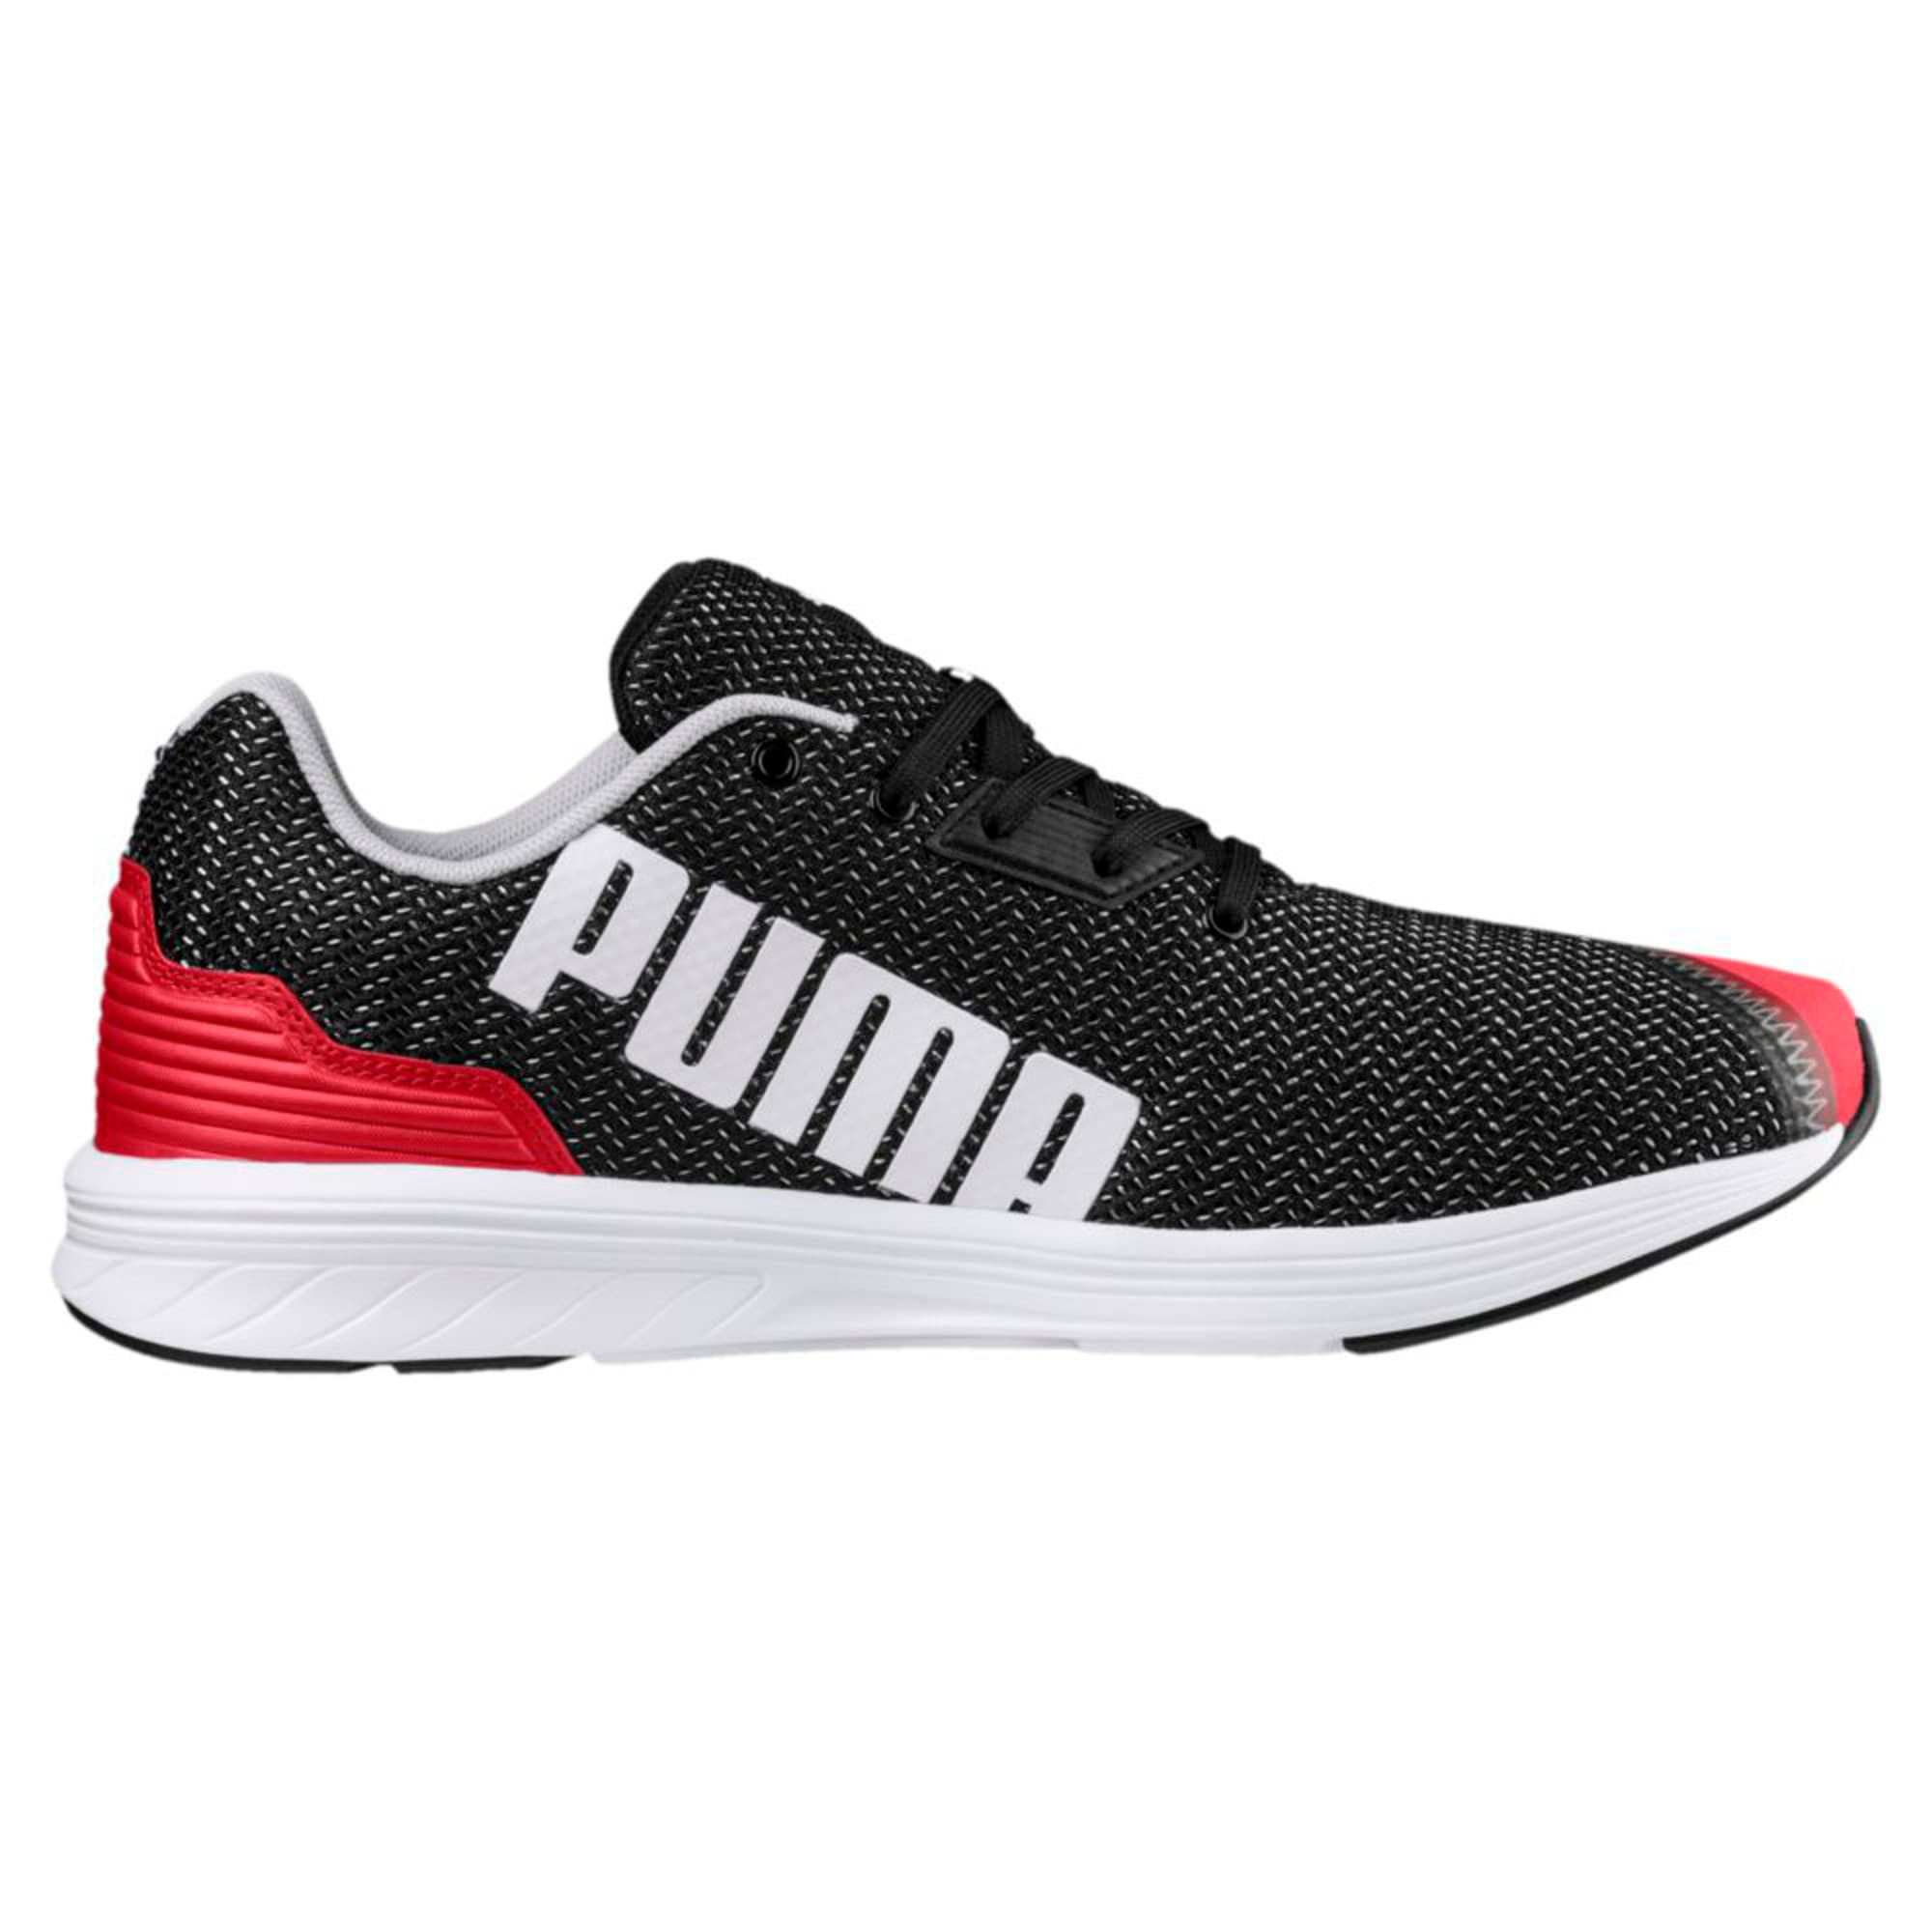 Thumbnail 4 of NRGY Resurge Puma Black-Puma White, Puma Blk-Ribbon Rd-Pma Wht, medium-IND